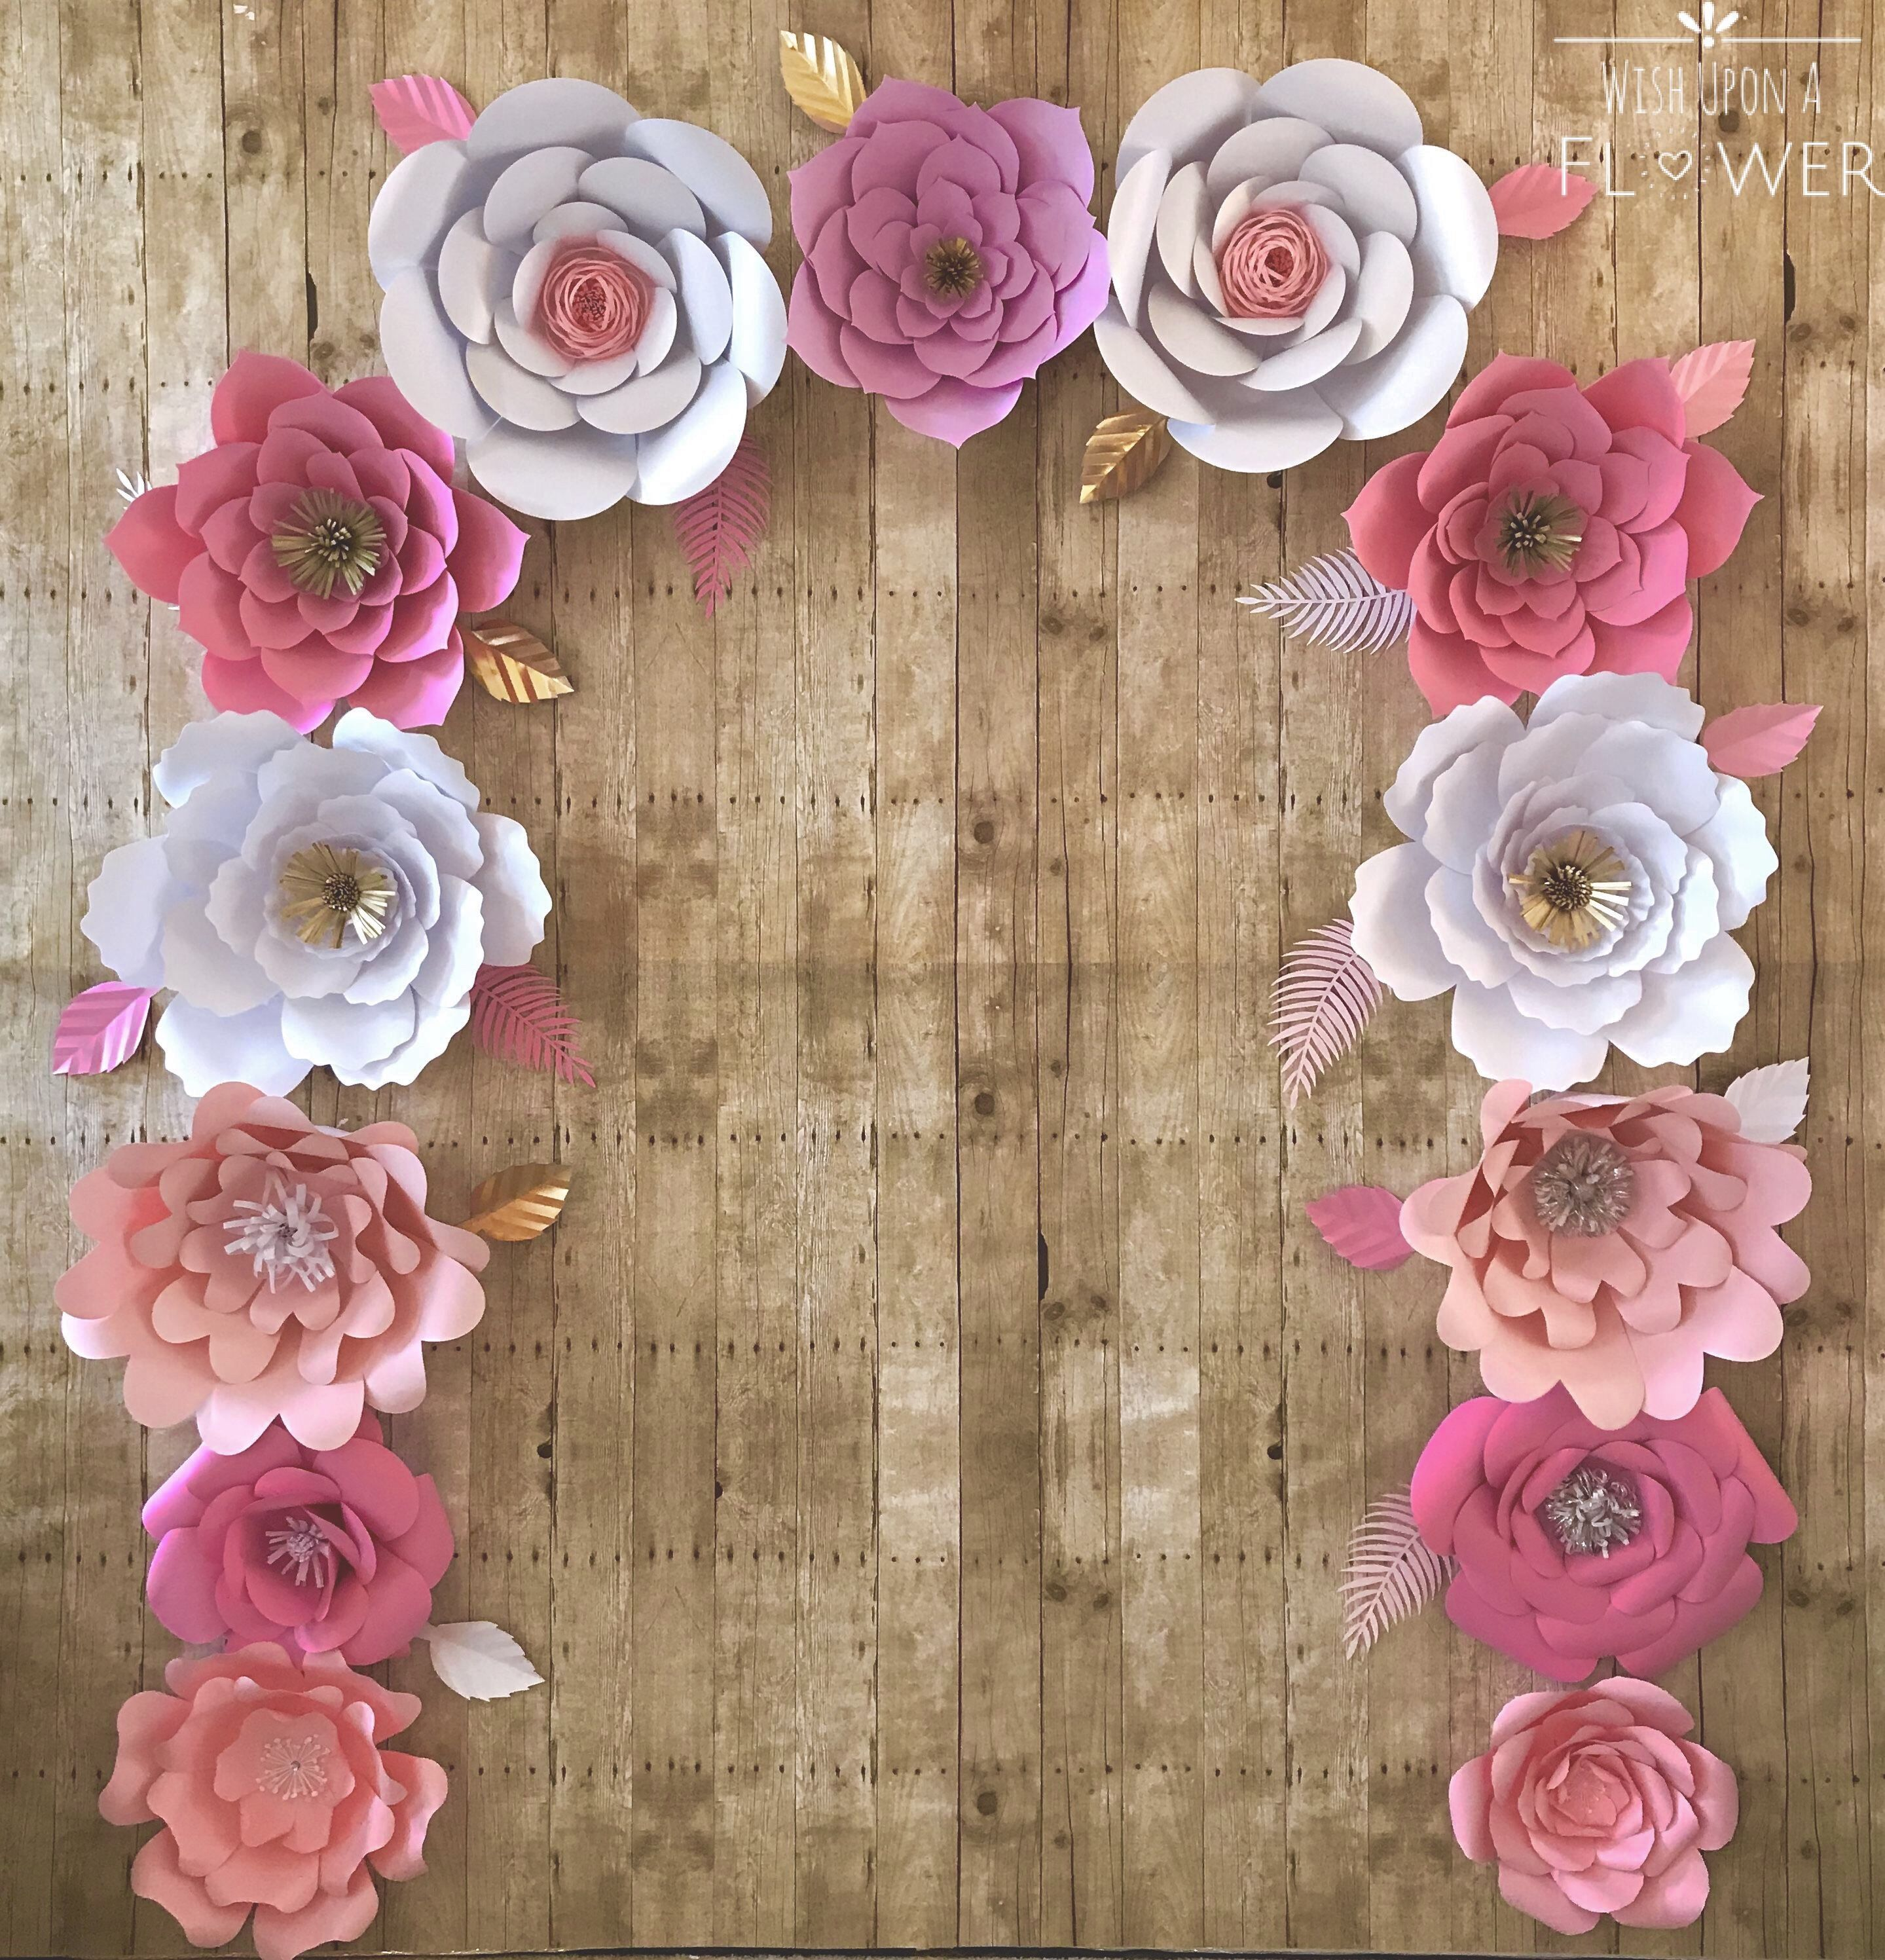 Wedding decorations paper flowers  Paper Flower Wall paperflowerwall wedding weddings paperflower